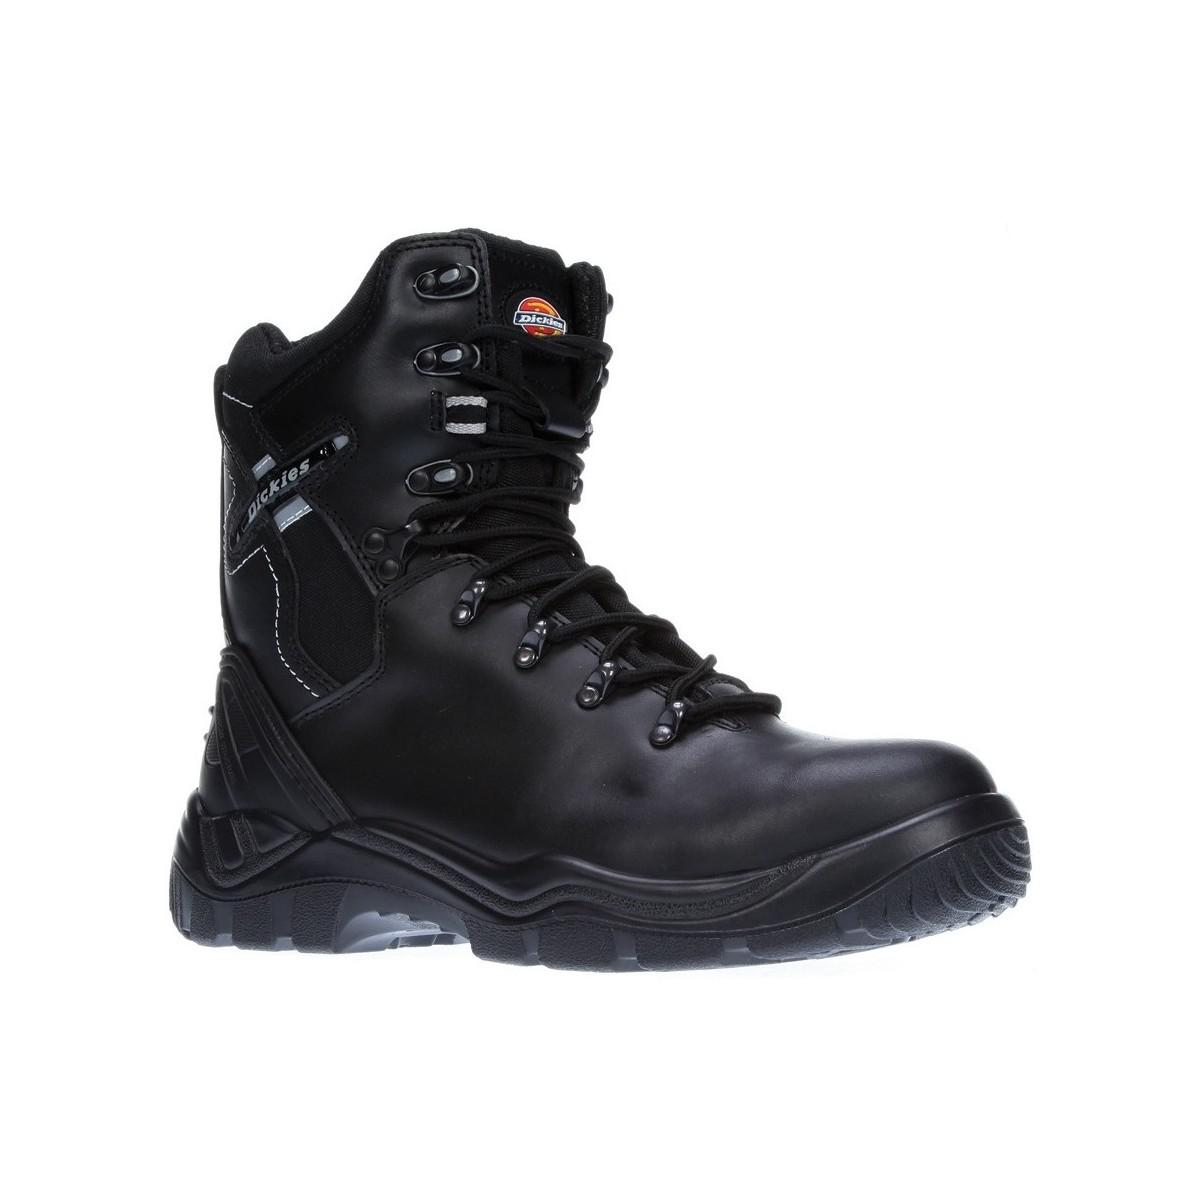 dd8cbeb66b7 Dickies Mens S1p Quebec Lace Up Leather Safety Boots Men's Safety ...